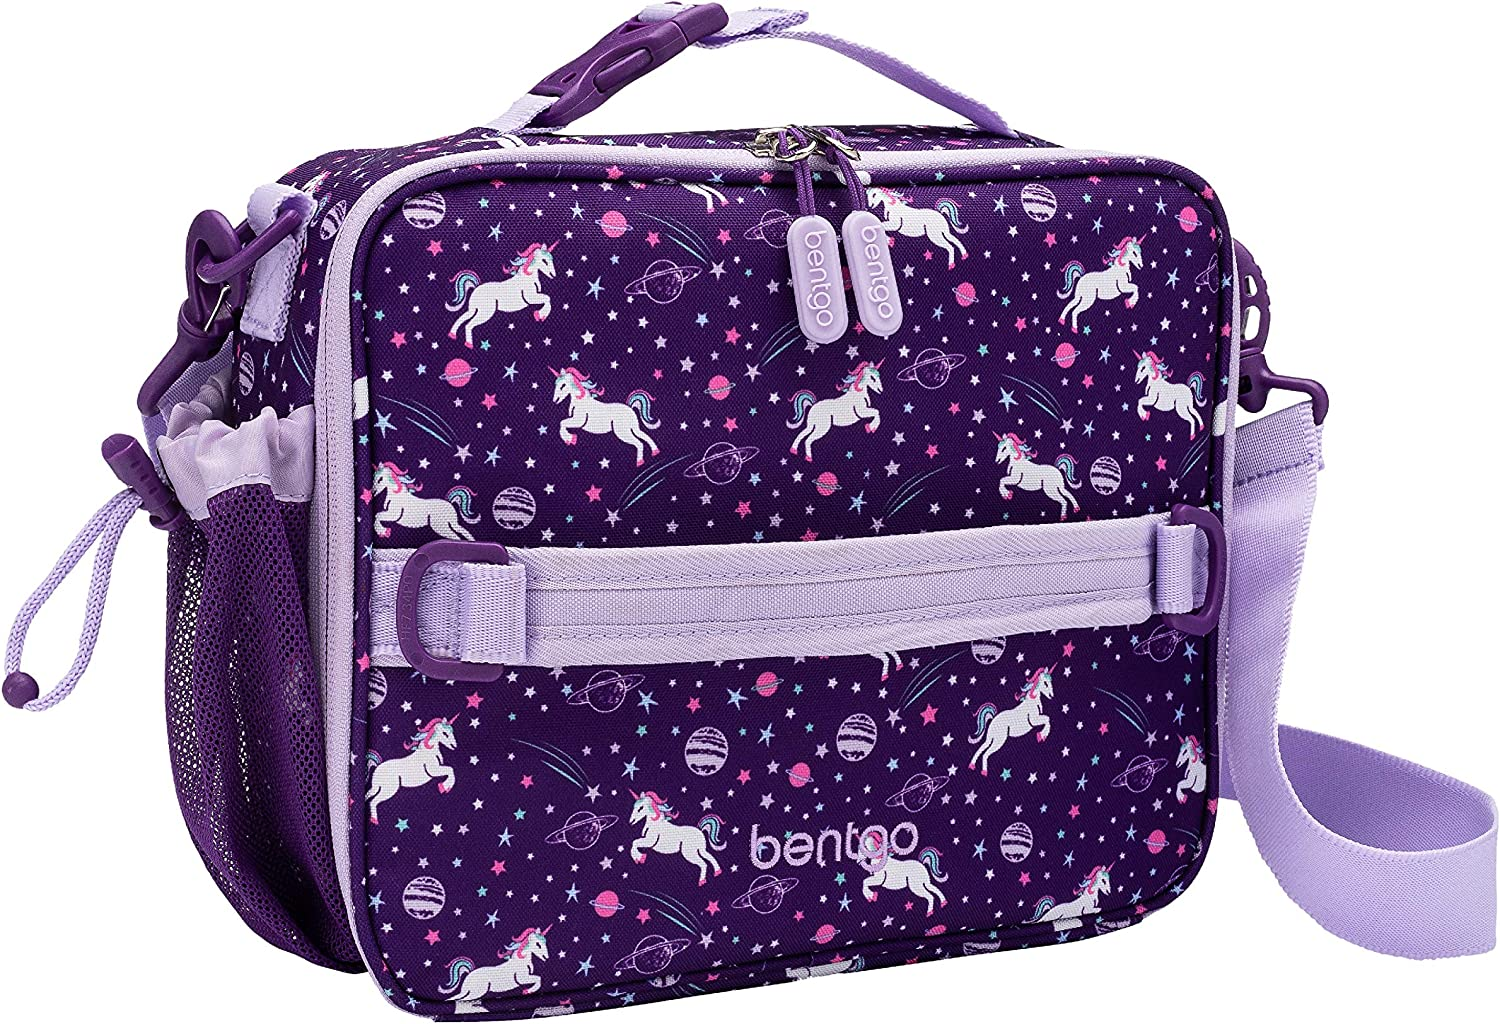 Bentgo Kids Prints Lunch Bag - Double Insulated, Durable, Water-Resistant Fabric with Interior and Exterior Zippered Pockets and External Bottle Holder- Ideal for Children of All Ages (Unicorn)